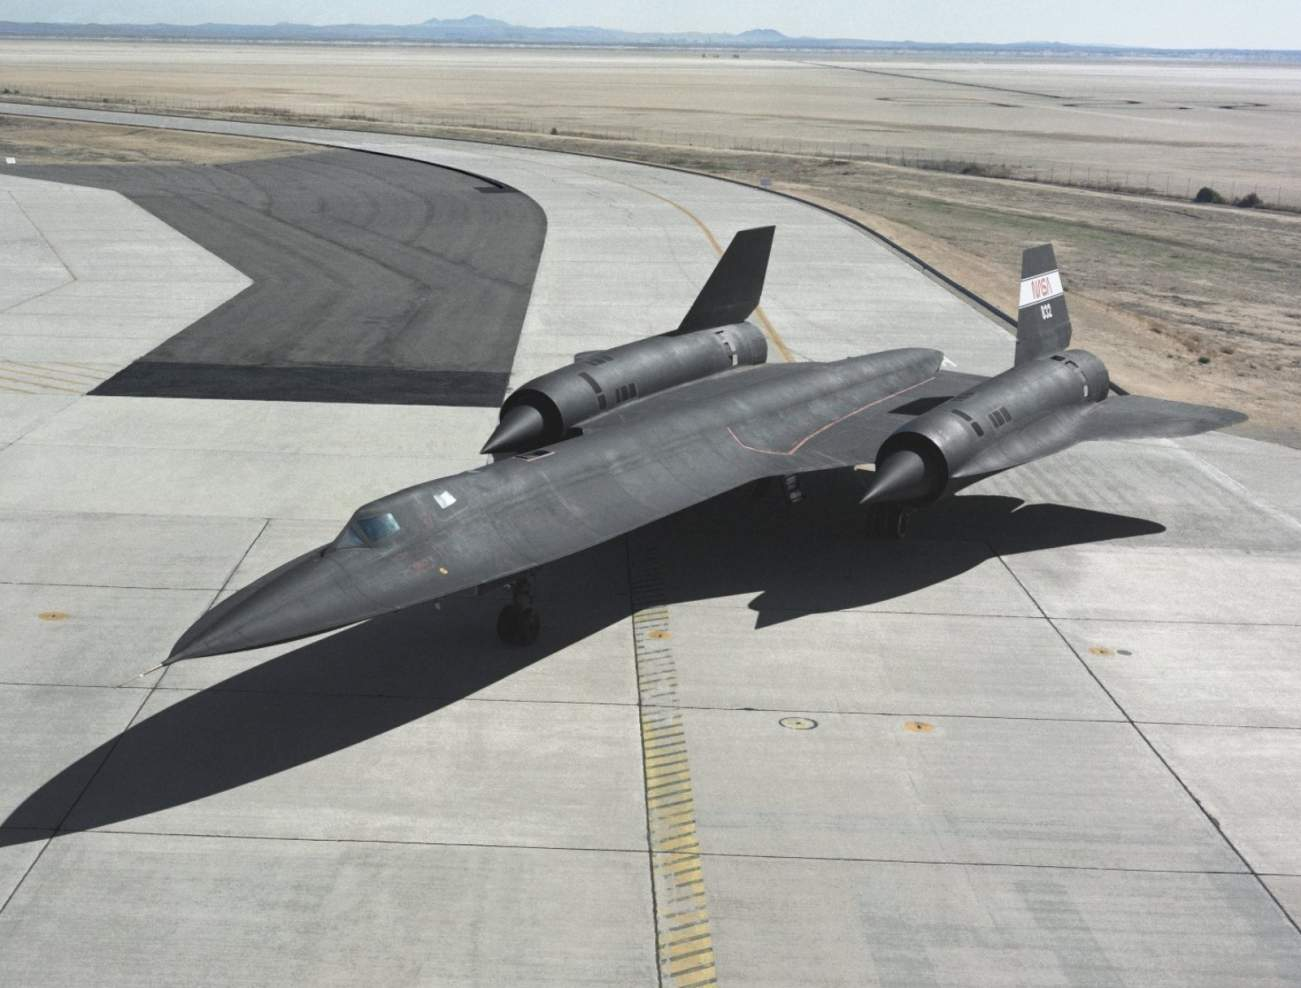 The Air Force's New Hypersonic Spy Plane Is Coming Soon